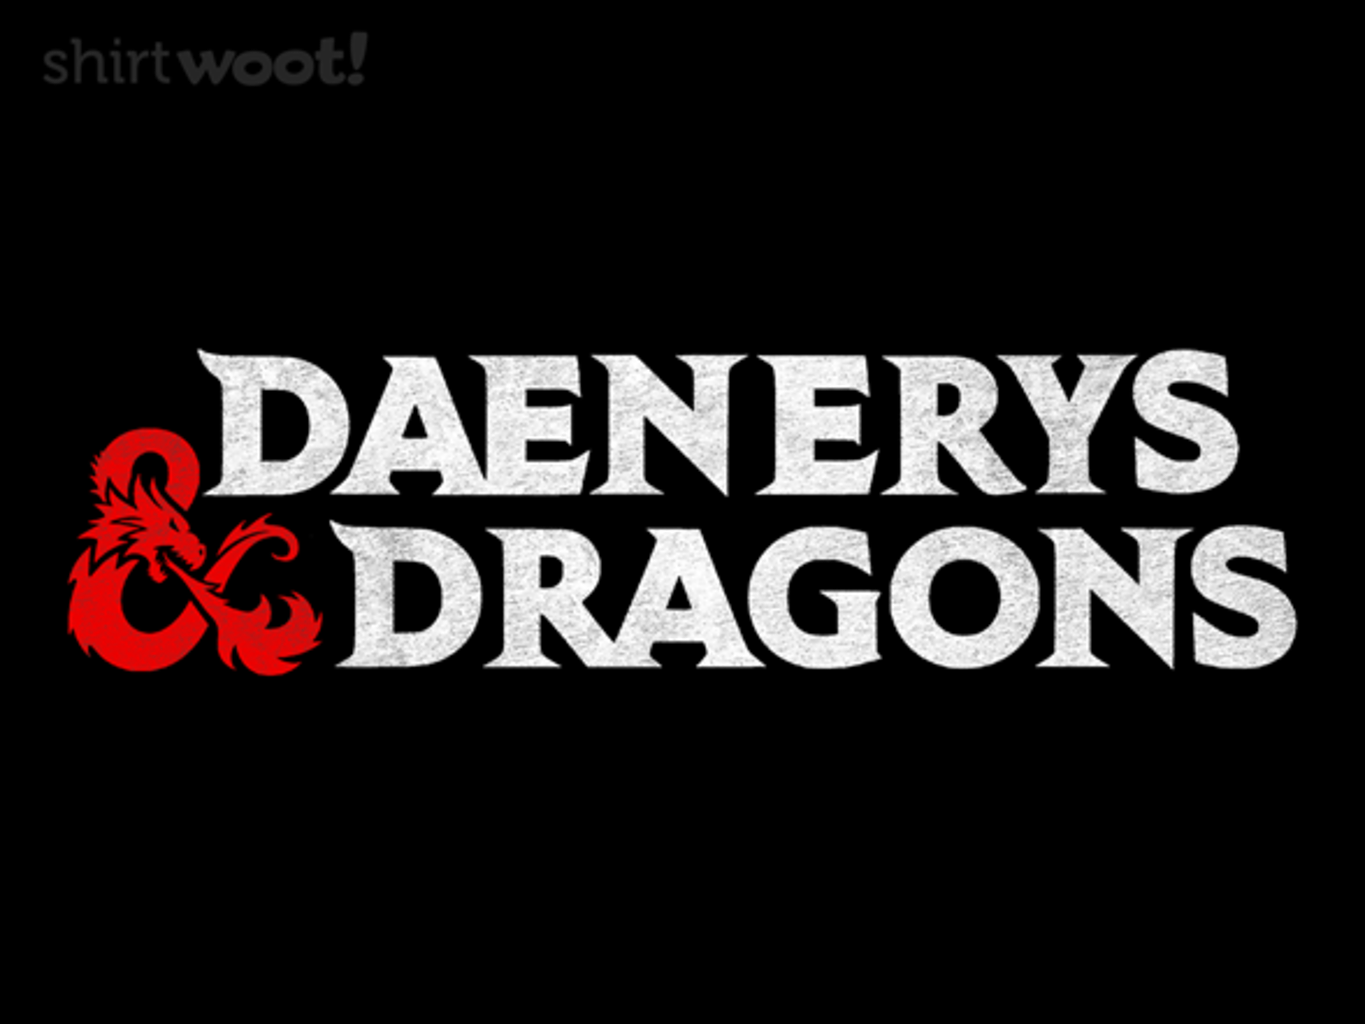 Woot!: Daenerys and Dragons